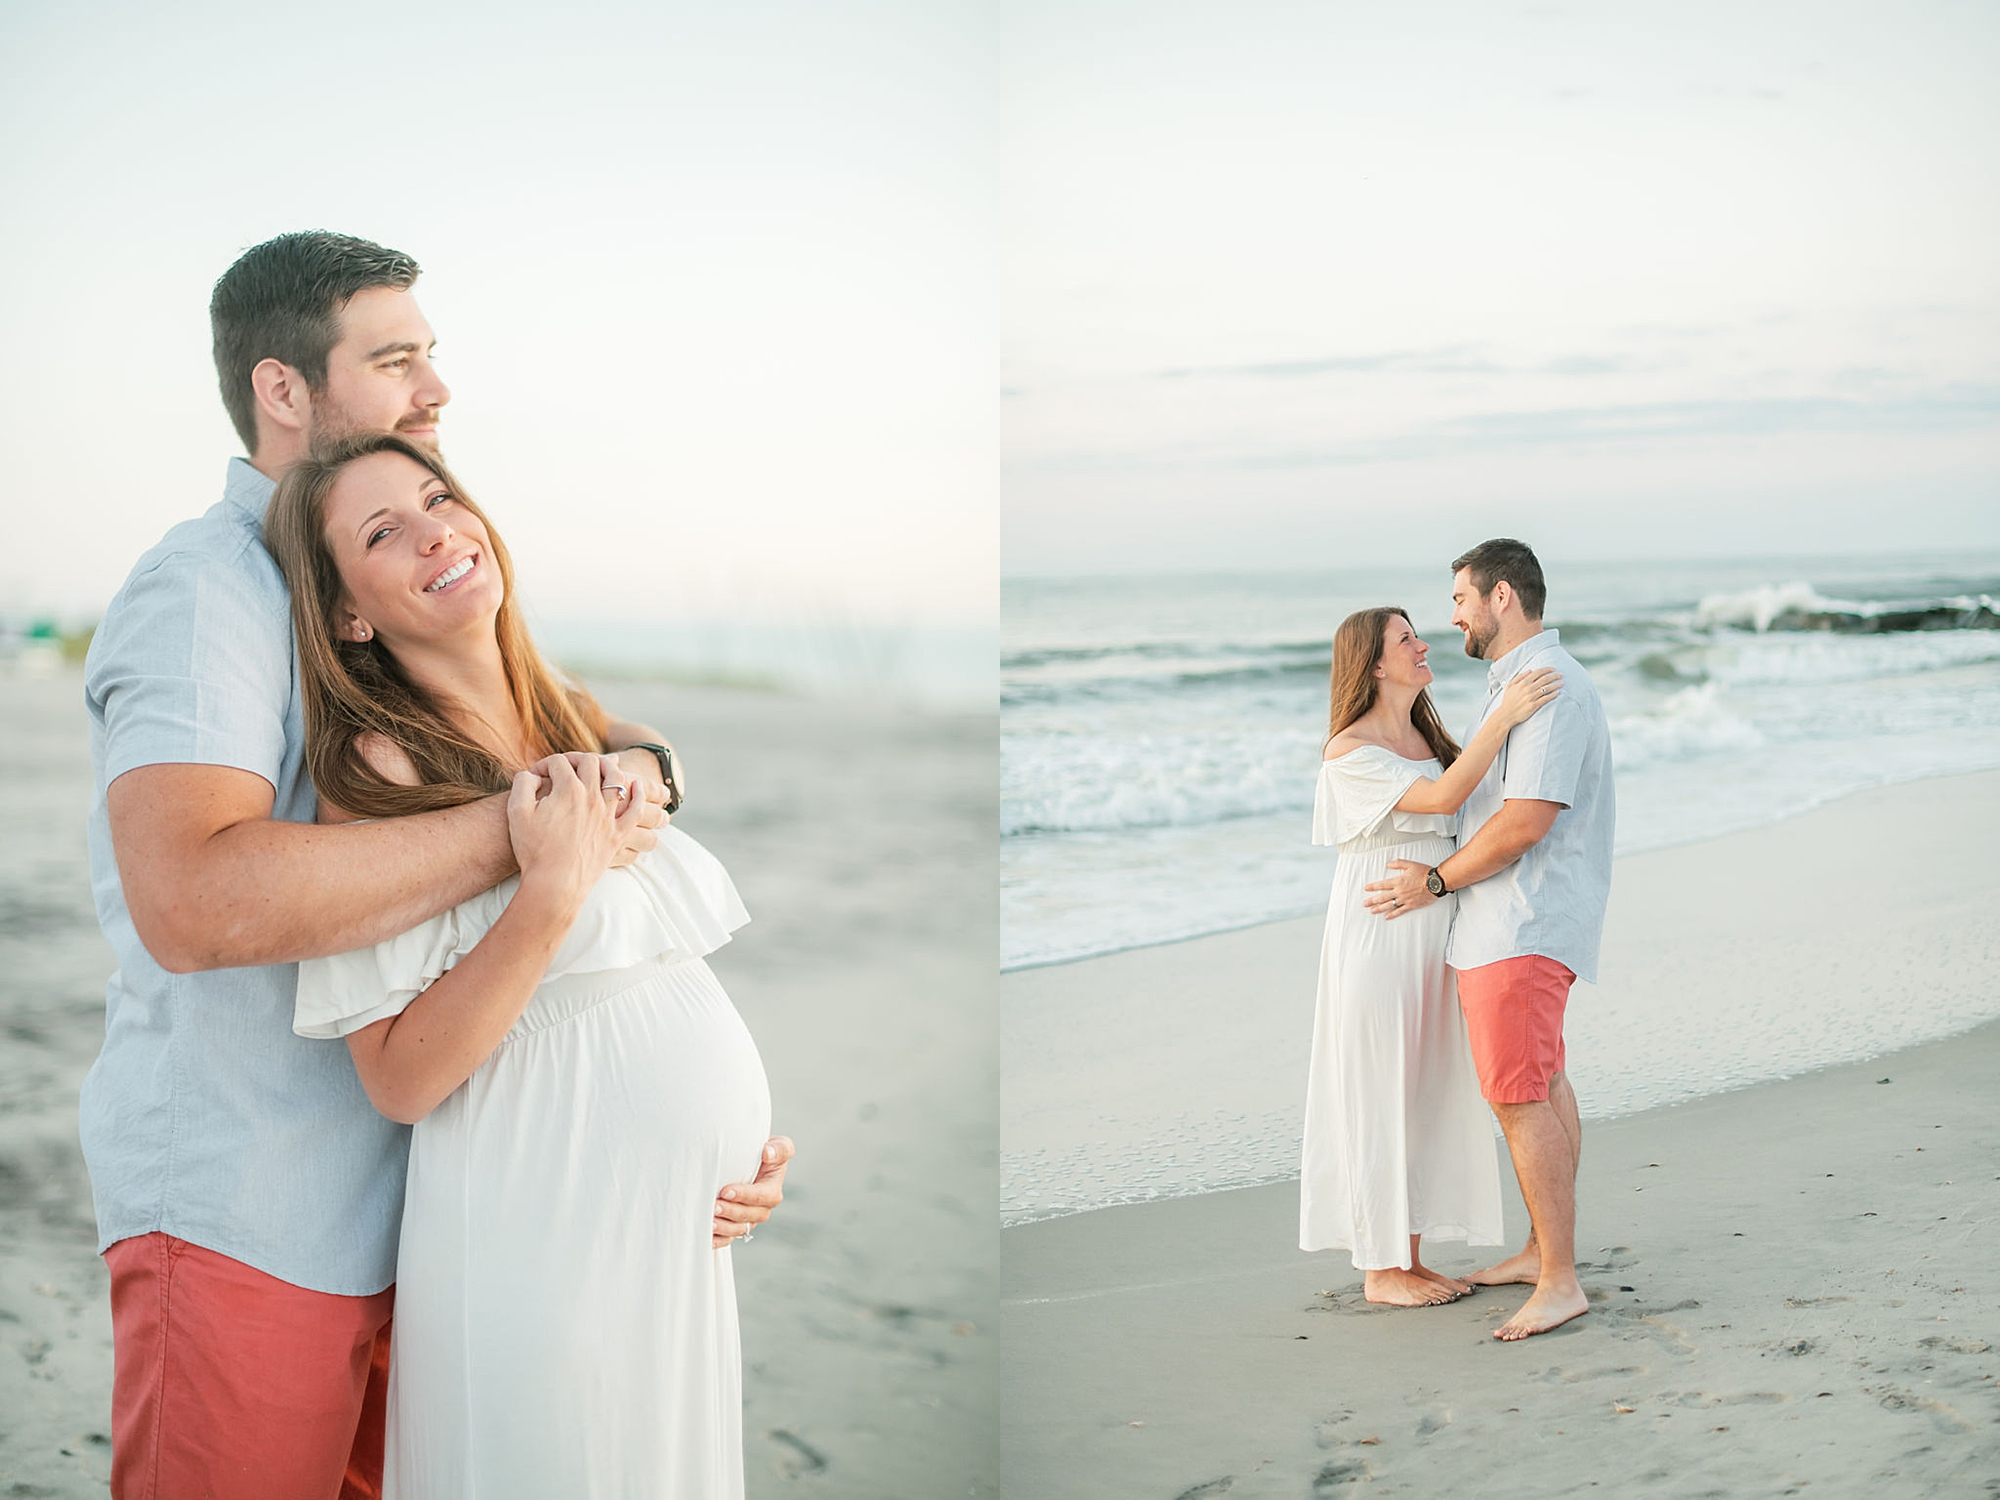 Glowy and Romantic Maternity Photography in Ocean City NJ by Magdalena Studios 0003